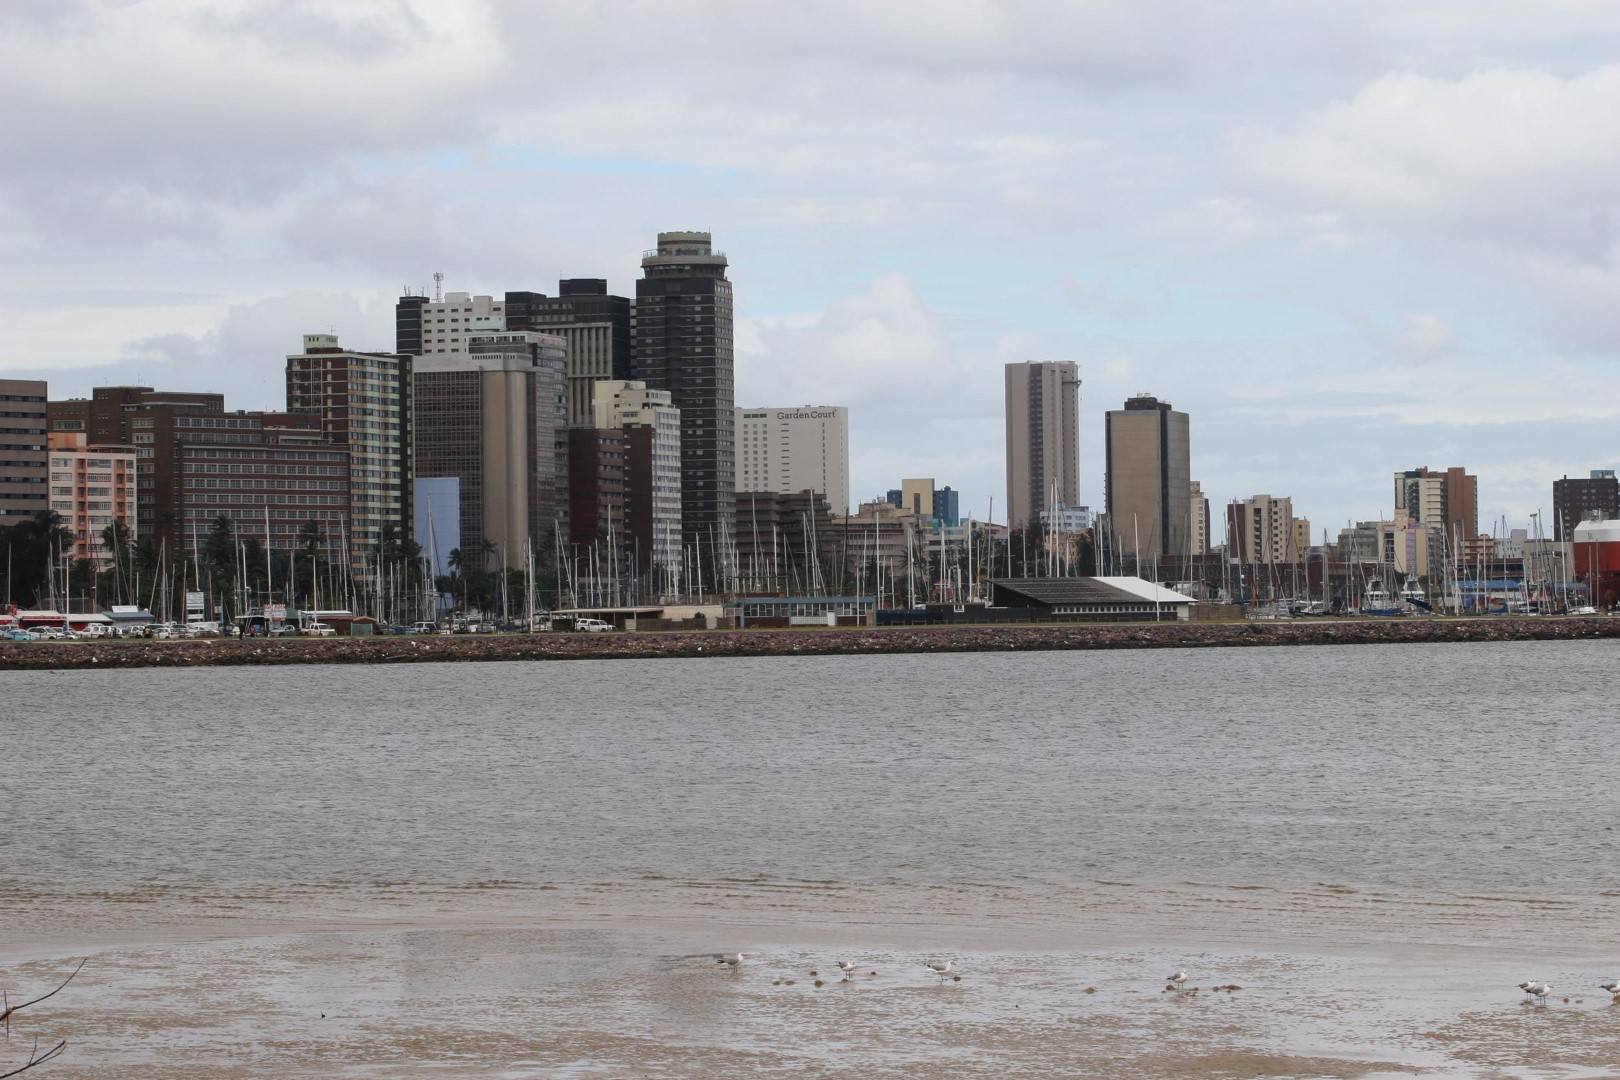 Durban bids to host Commonwealth Games